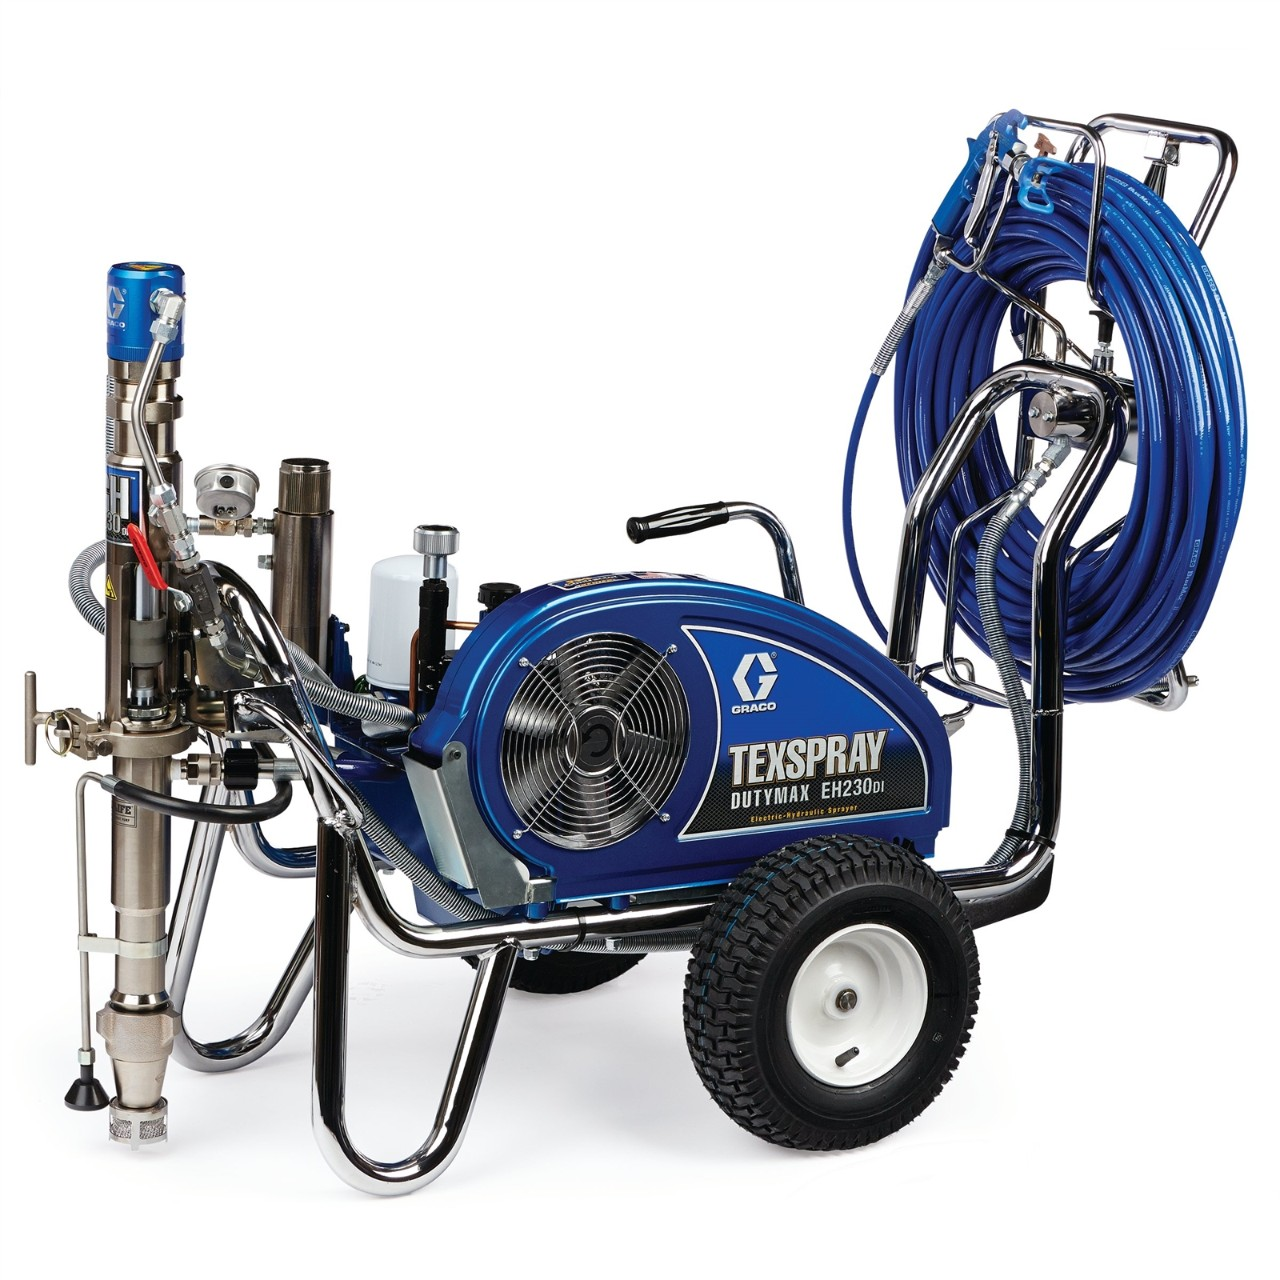 Graco TexSpray DutyMax Putty Sprayer